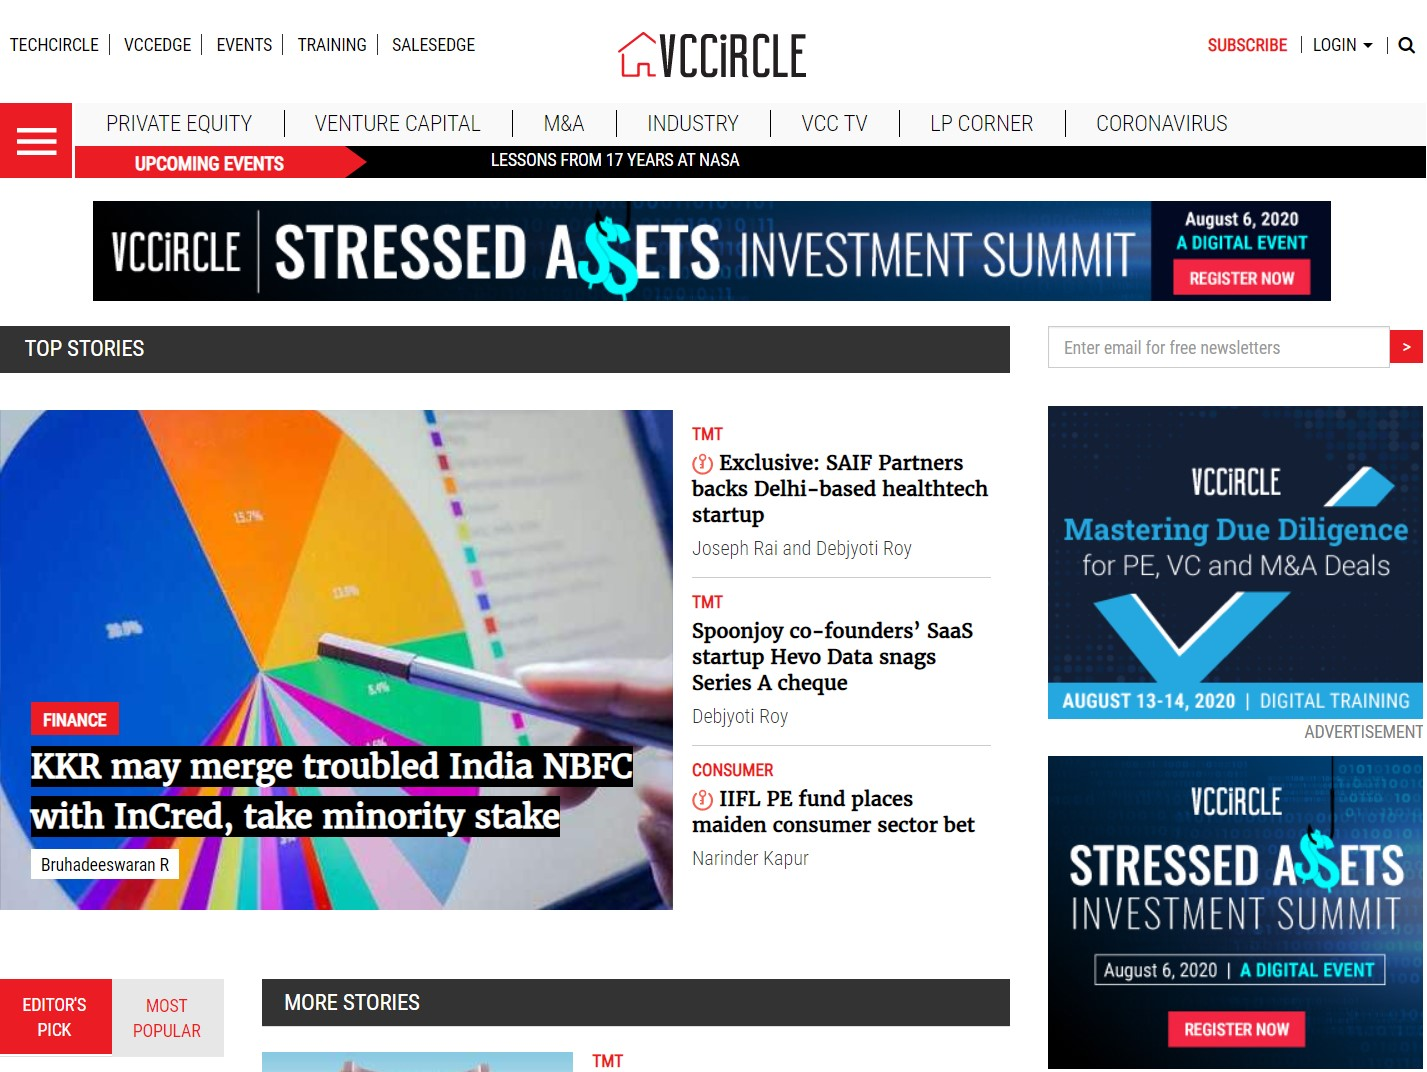 NewsCorp sells VCCircle to HT Media